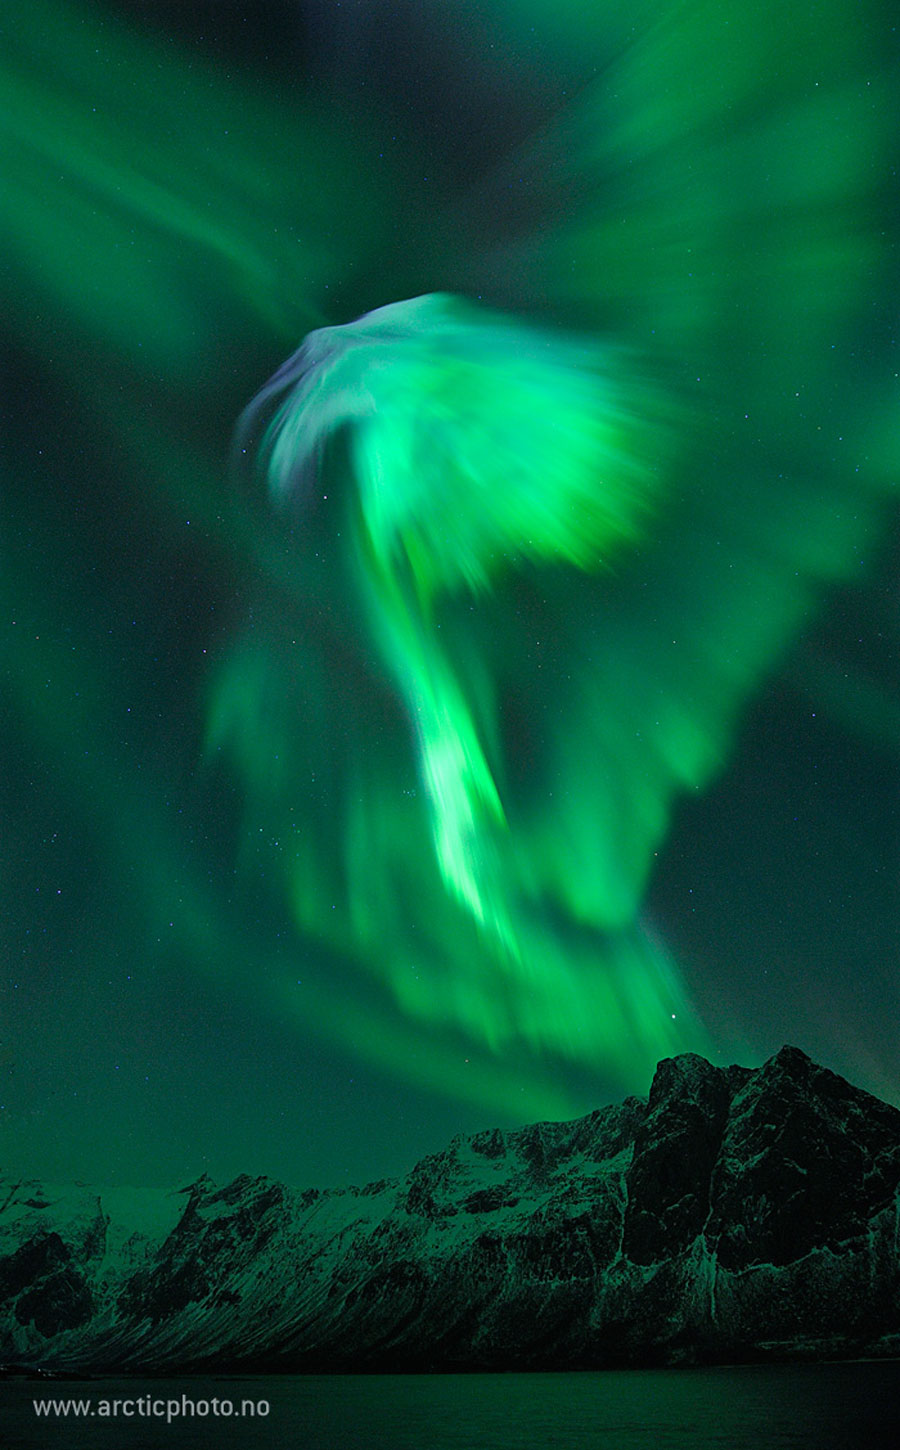 Eagle Aurora over Norway